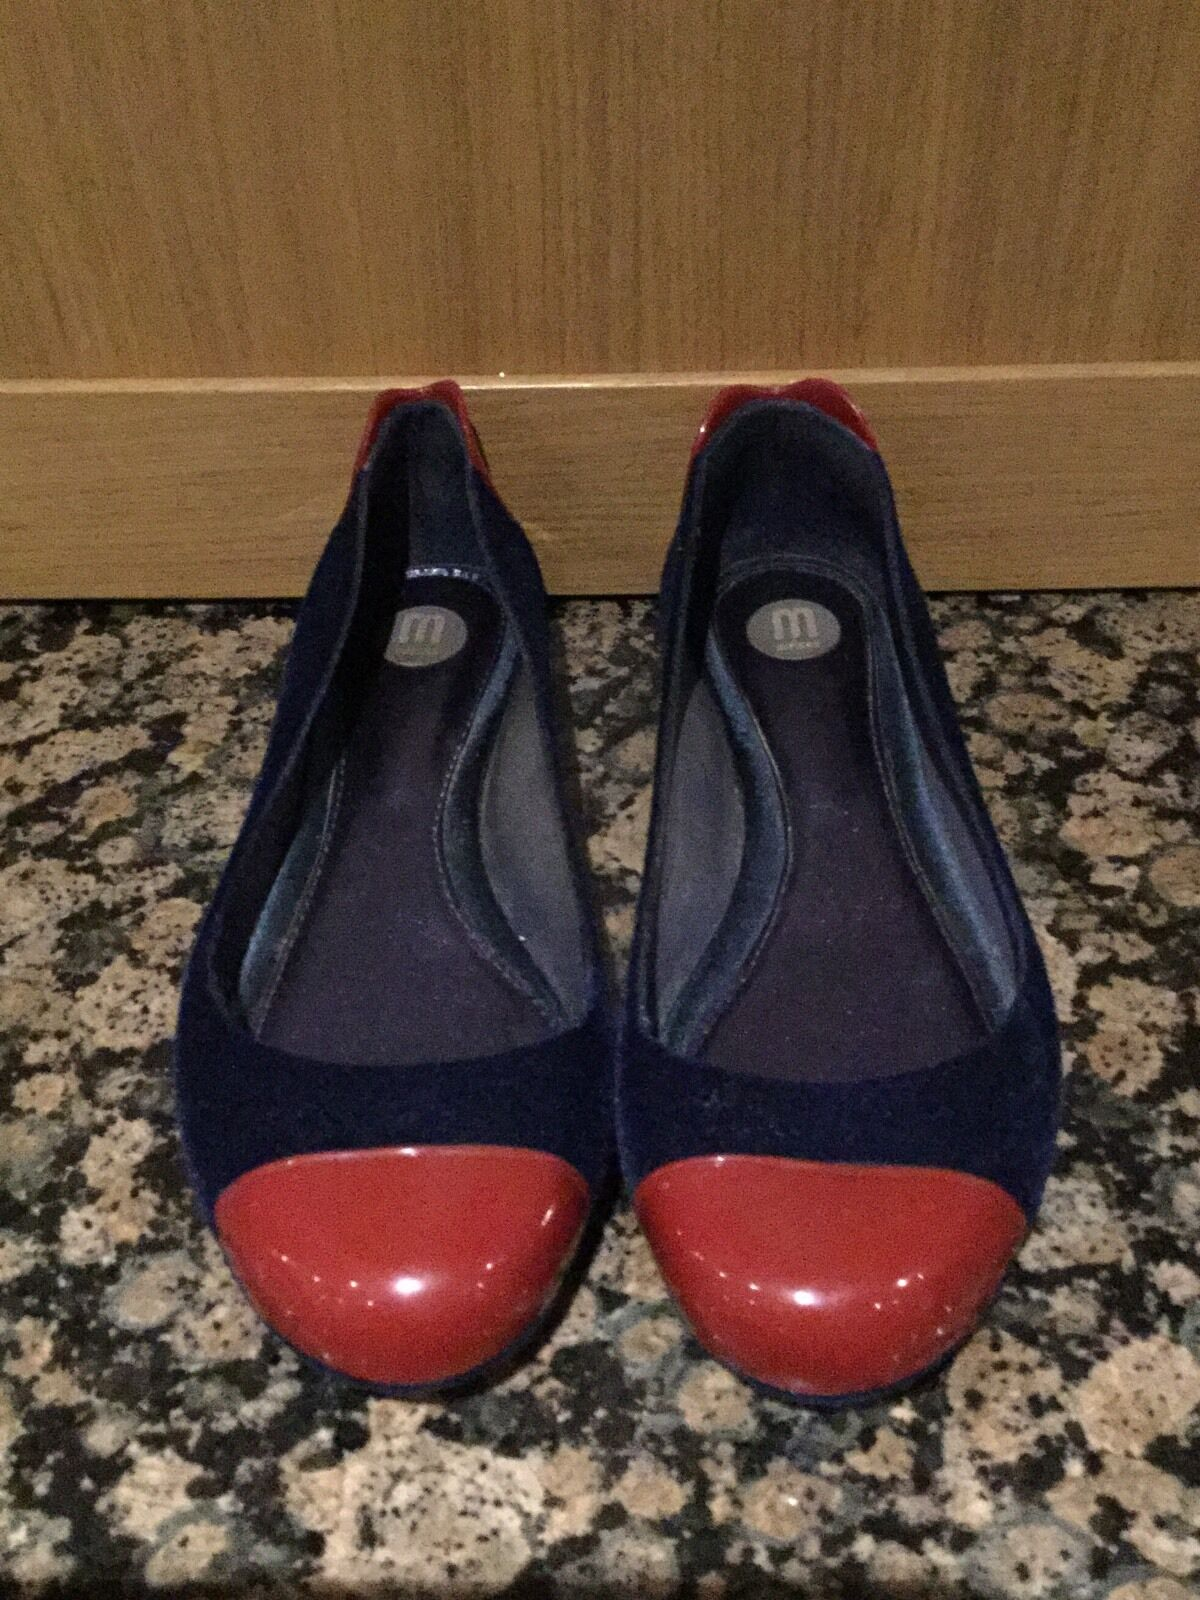 MELISSA FLAT Blau & ROT VELOUR VELOUR VELOUR Schuhe/SIZE 6/39/IN GREAT CONDITION 3b1d8a